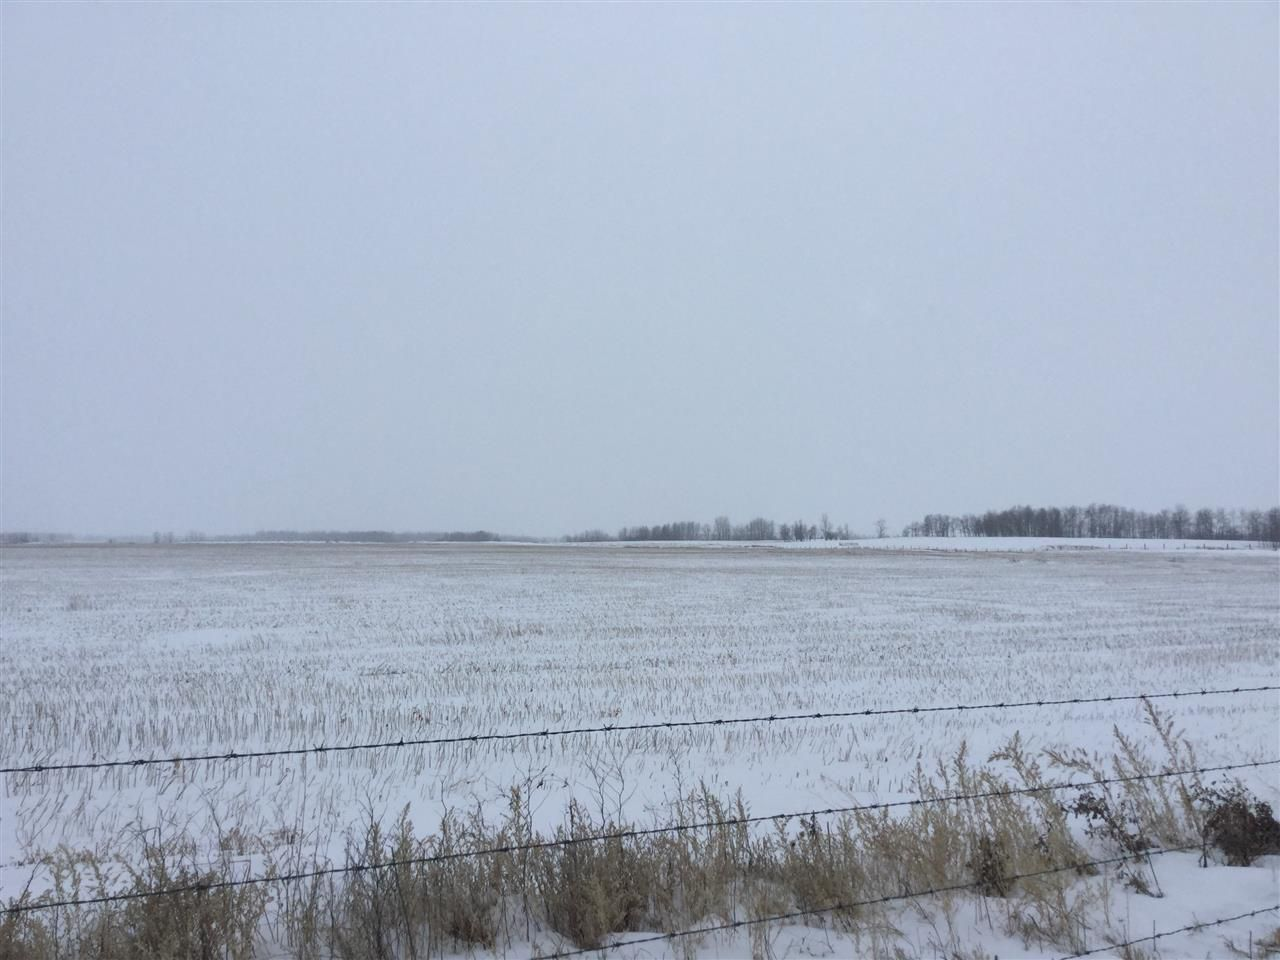 Main Photo: 60314 Rge Rd 252: Rural Westlock County Rural Land/Vacant Lot for sale : MLS®# E4152097